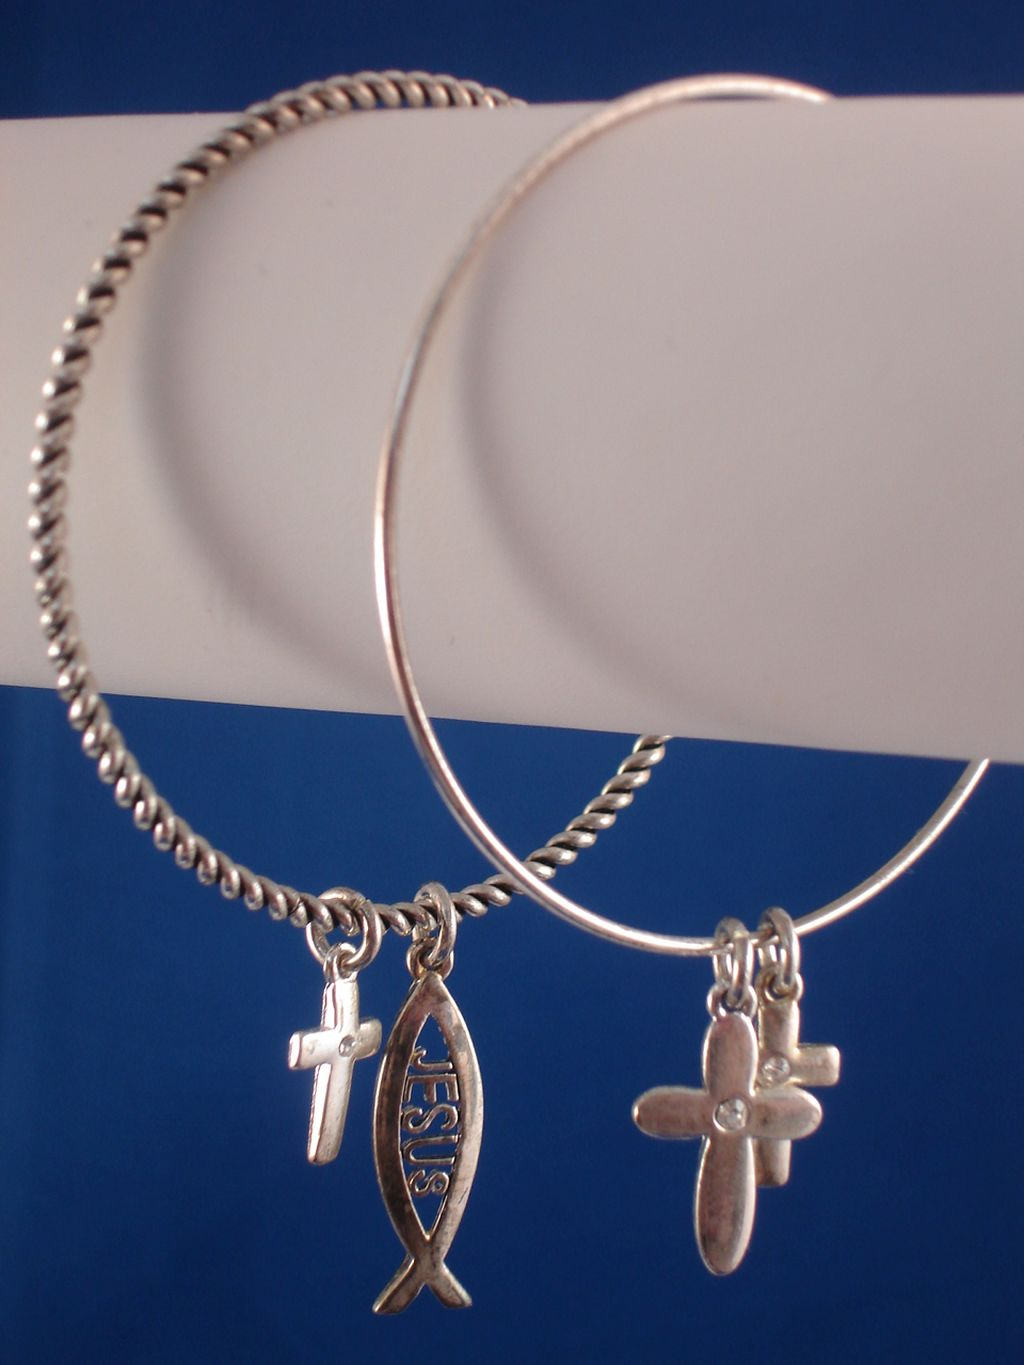 Christian Faith Inspired, Set of Two Bangle Bracelets, Jesus Fish & Cross Charms, CZ Stones, Sterling Silver Plated